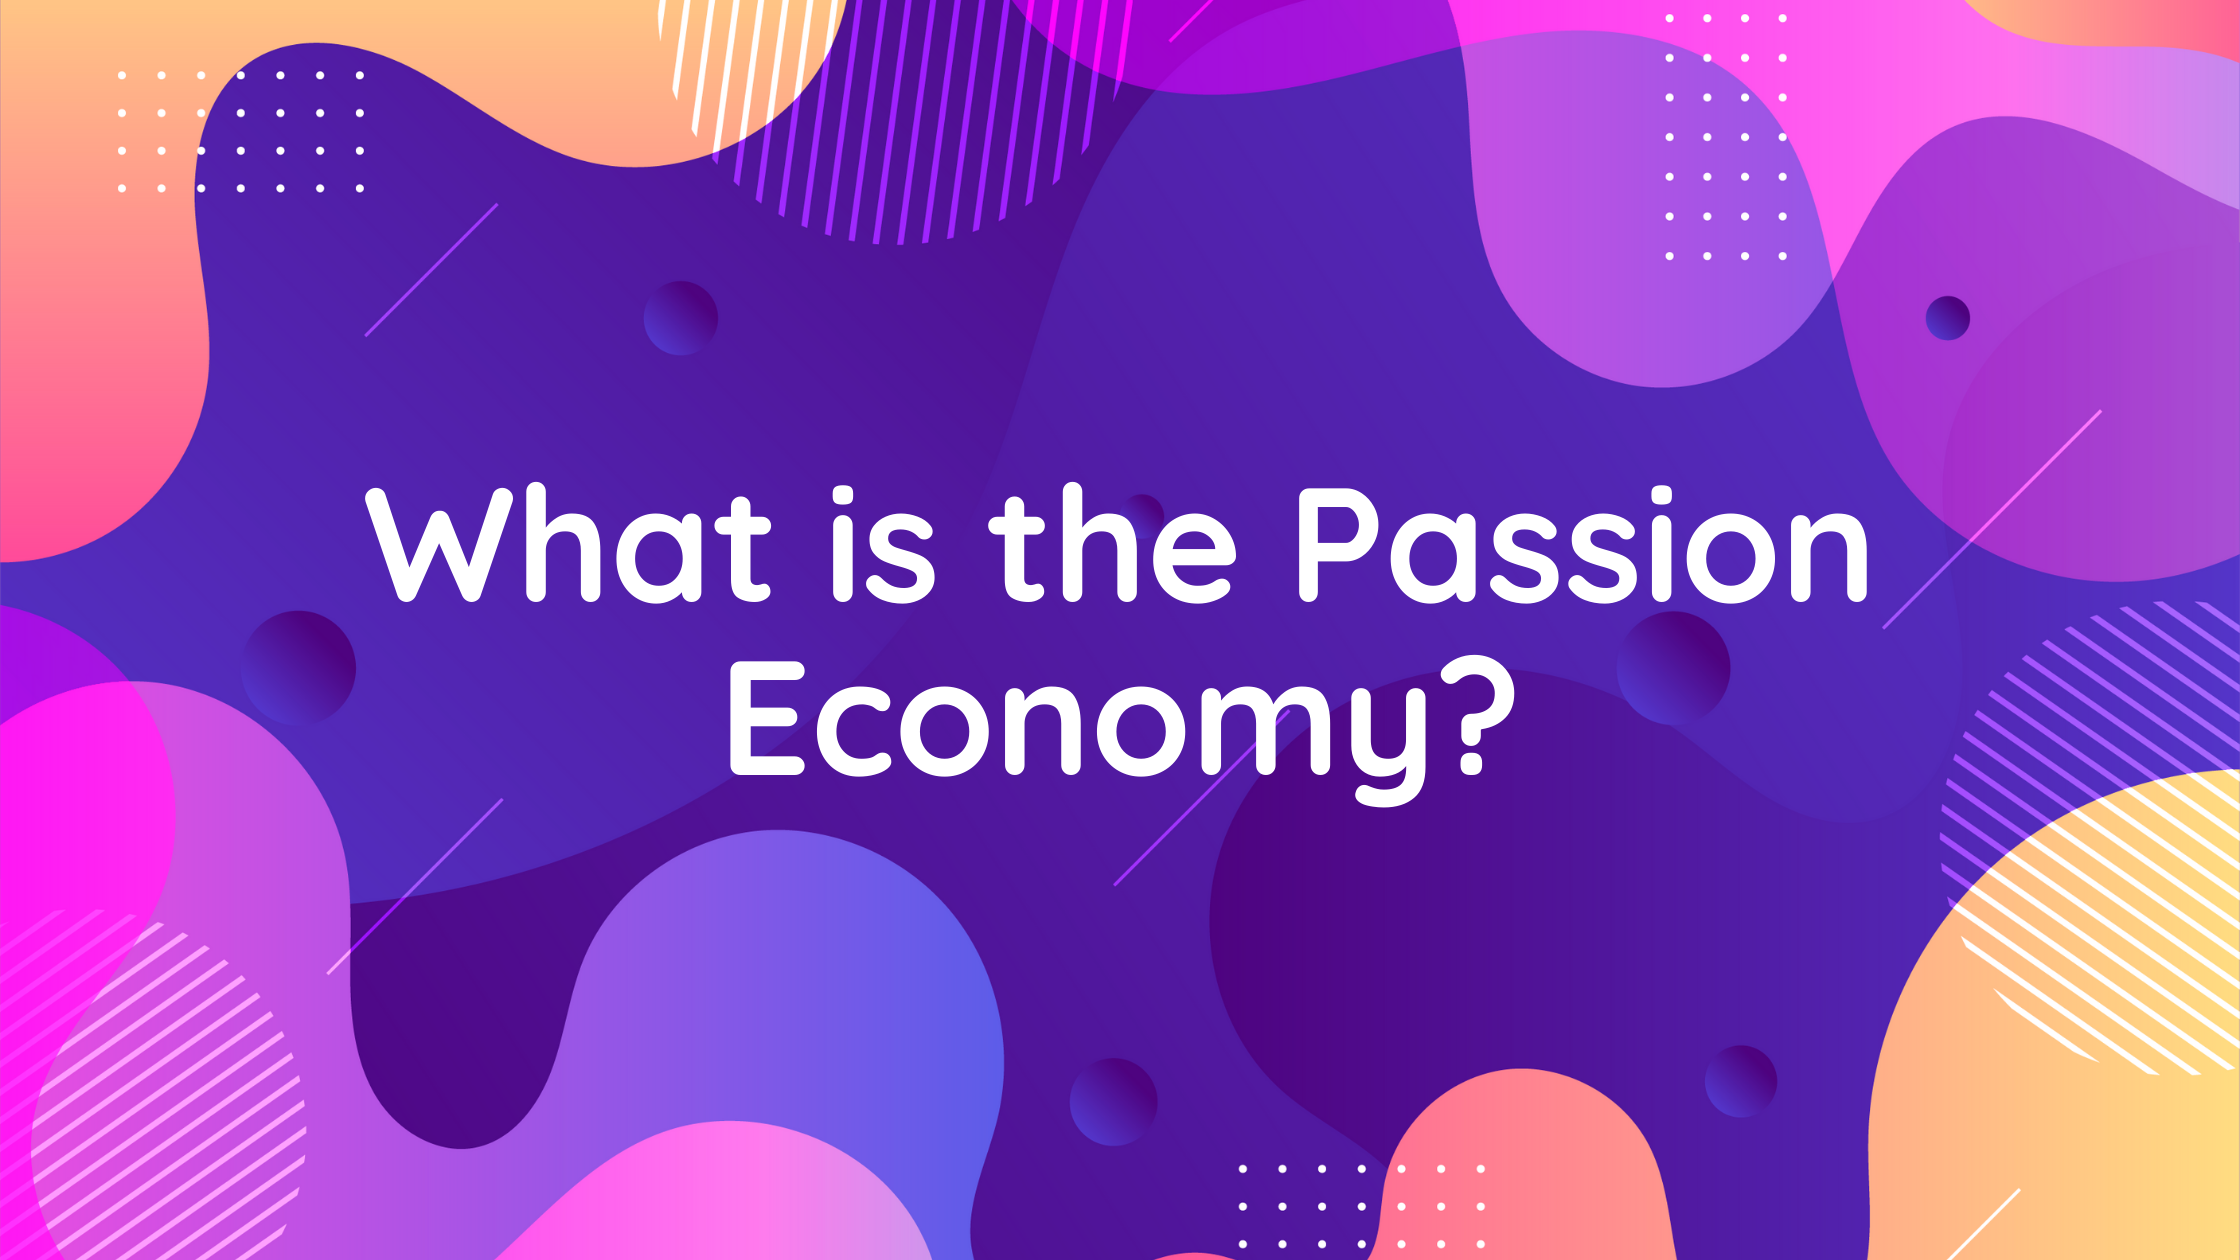 passion economy, what is the passion economy, passion economy platforms, digital publishing platforms, creator economy, passion economy definition, passion economy examples